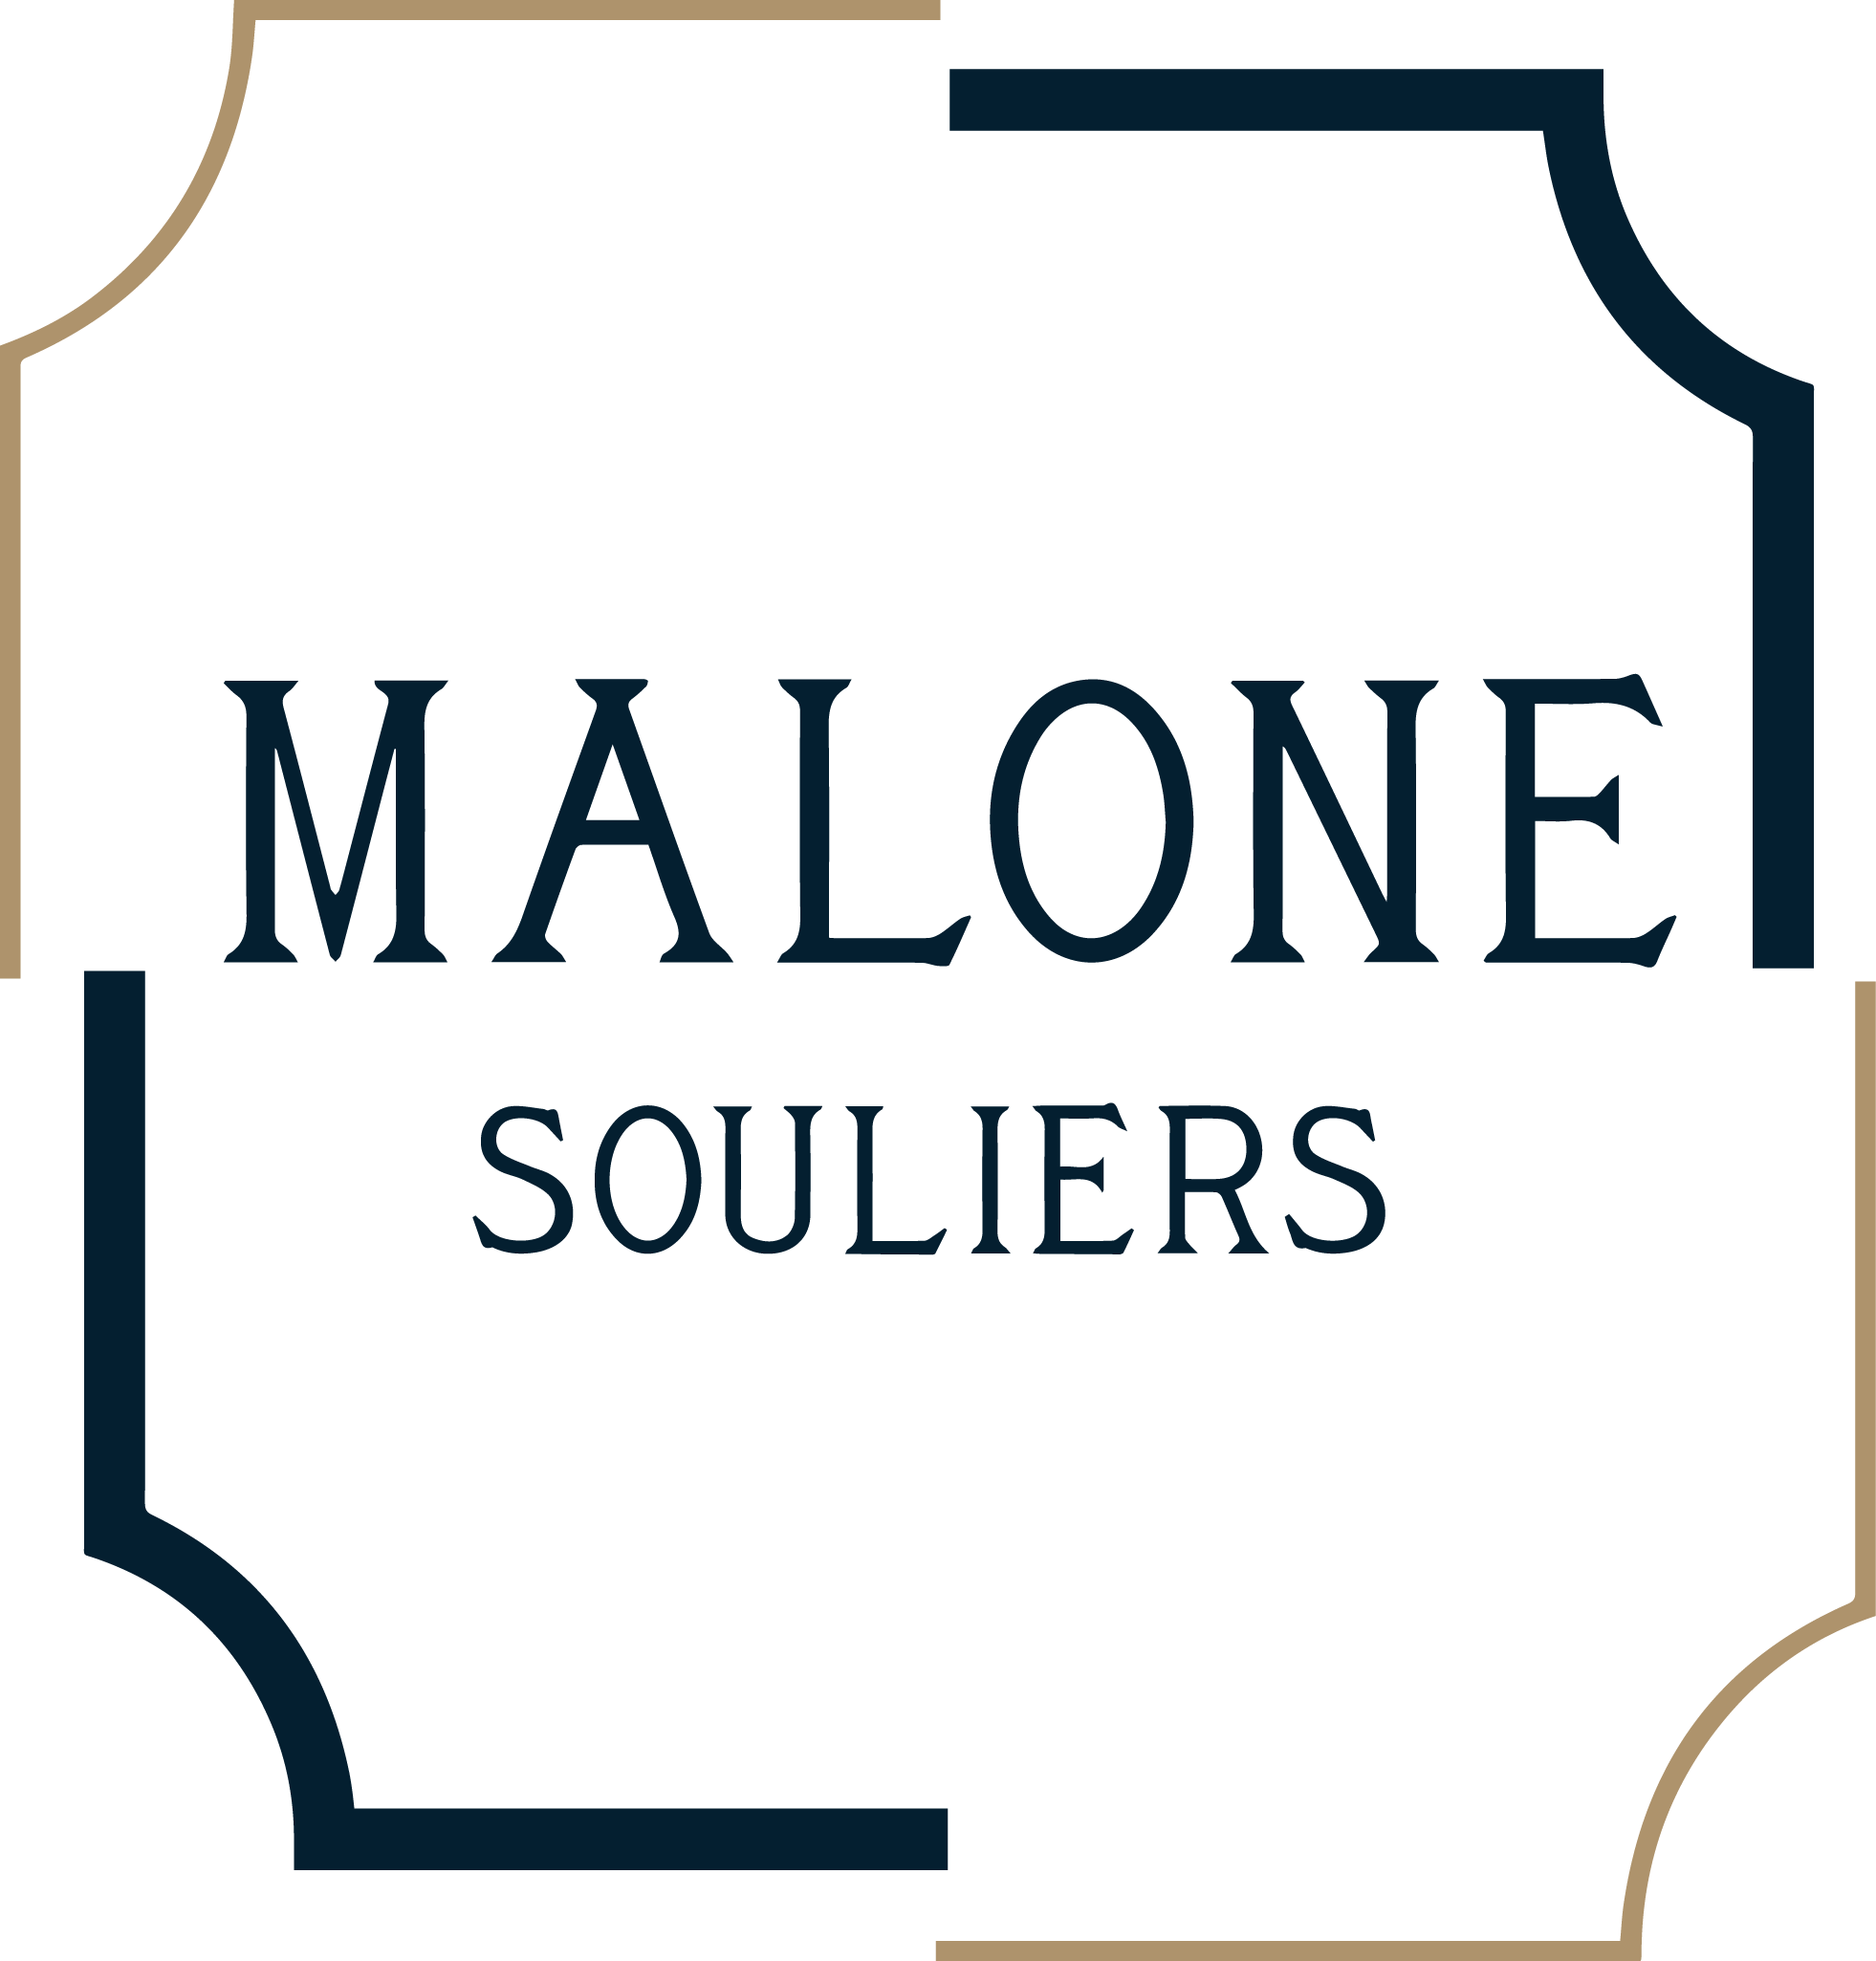 Malone Souliers Crest (blue,gold).png